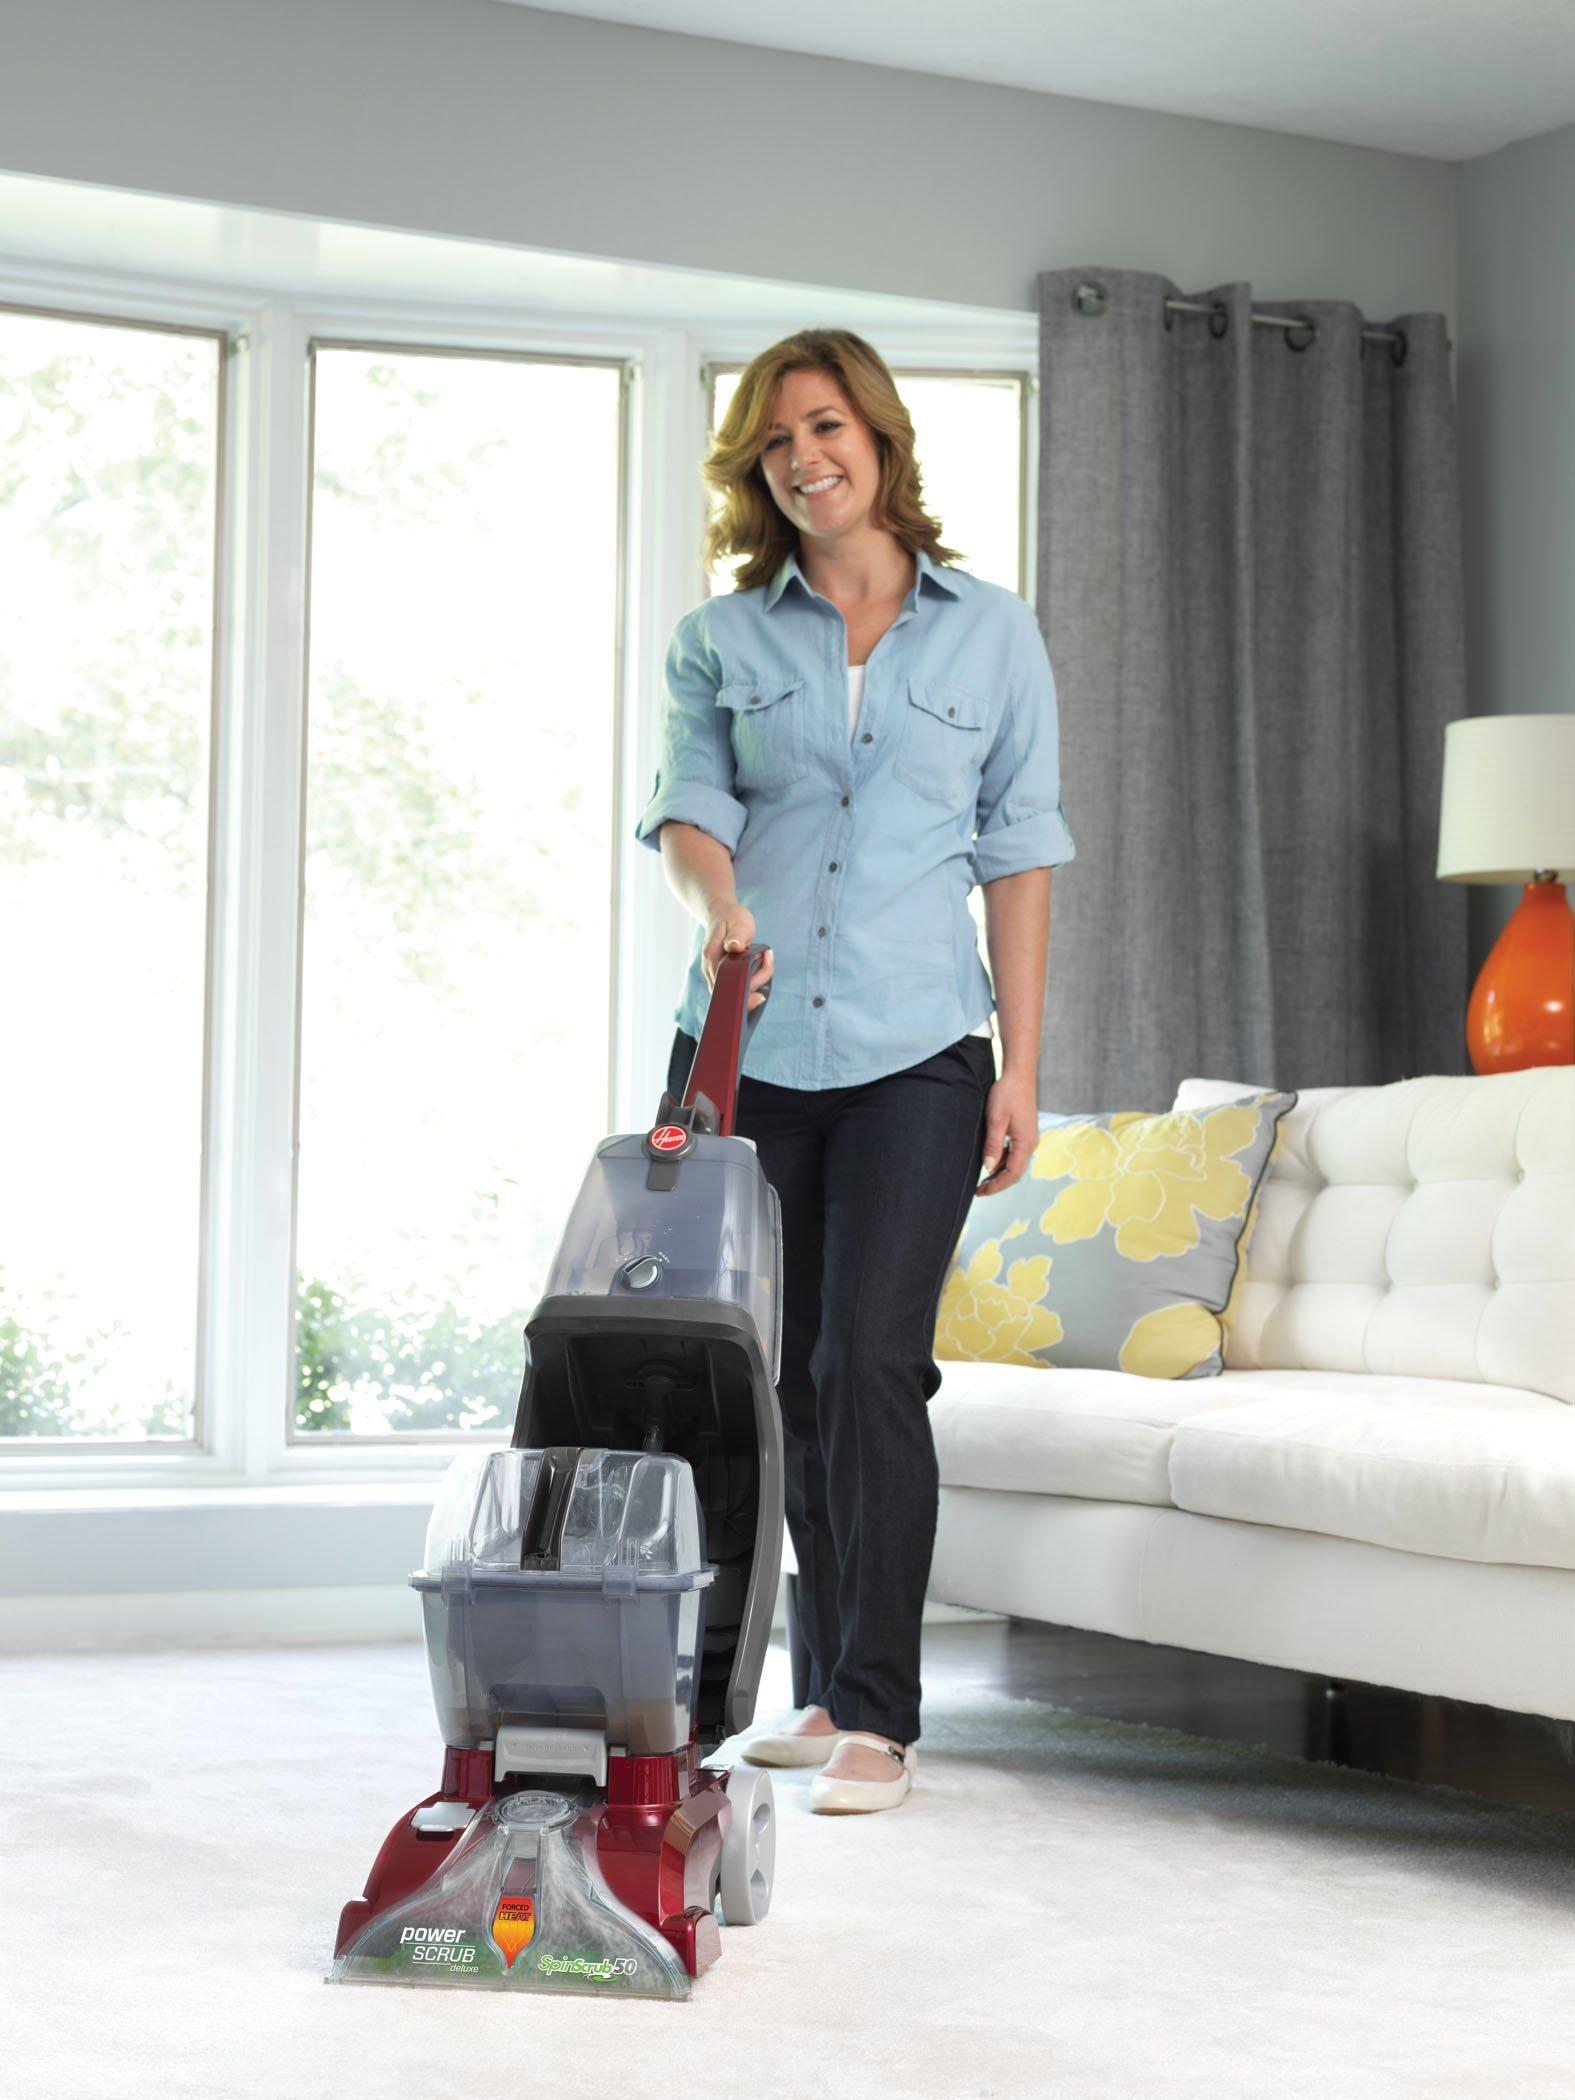 Power Scrub Deluxe Carpet Cleaner3